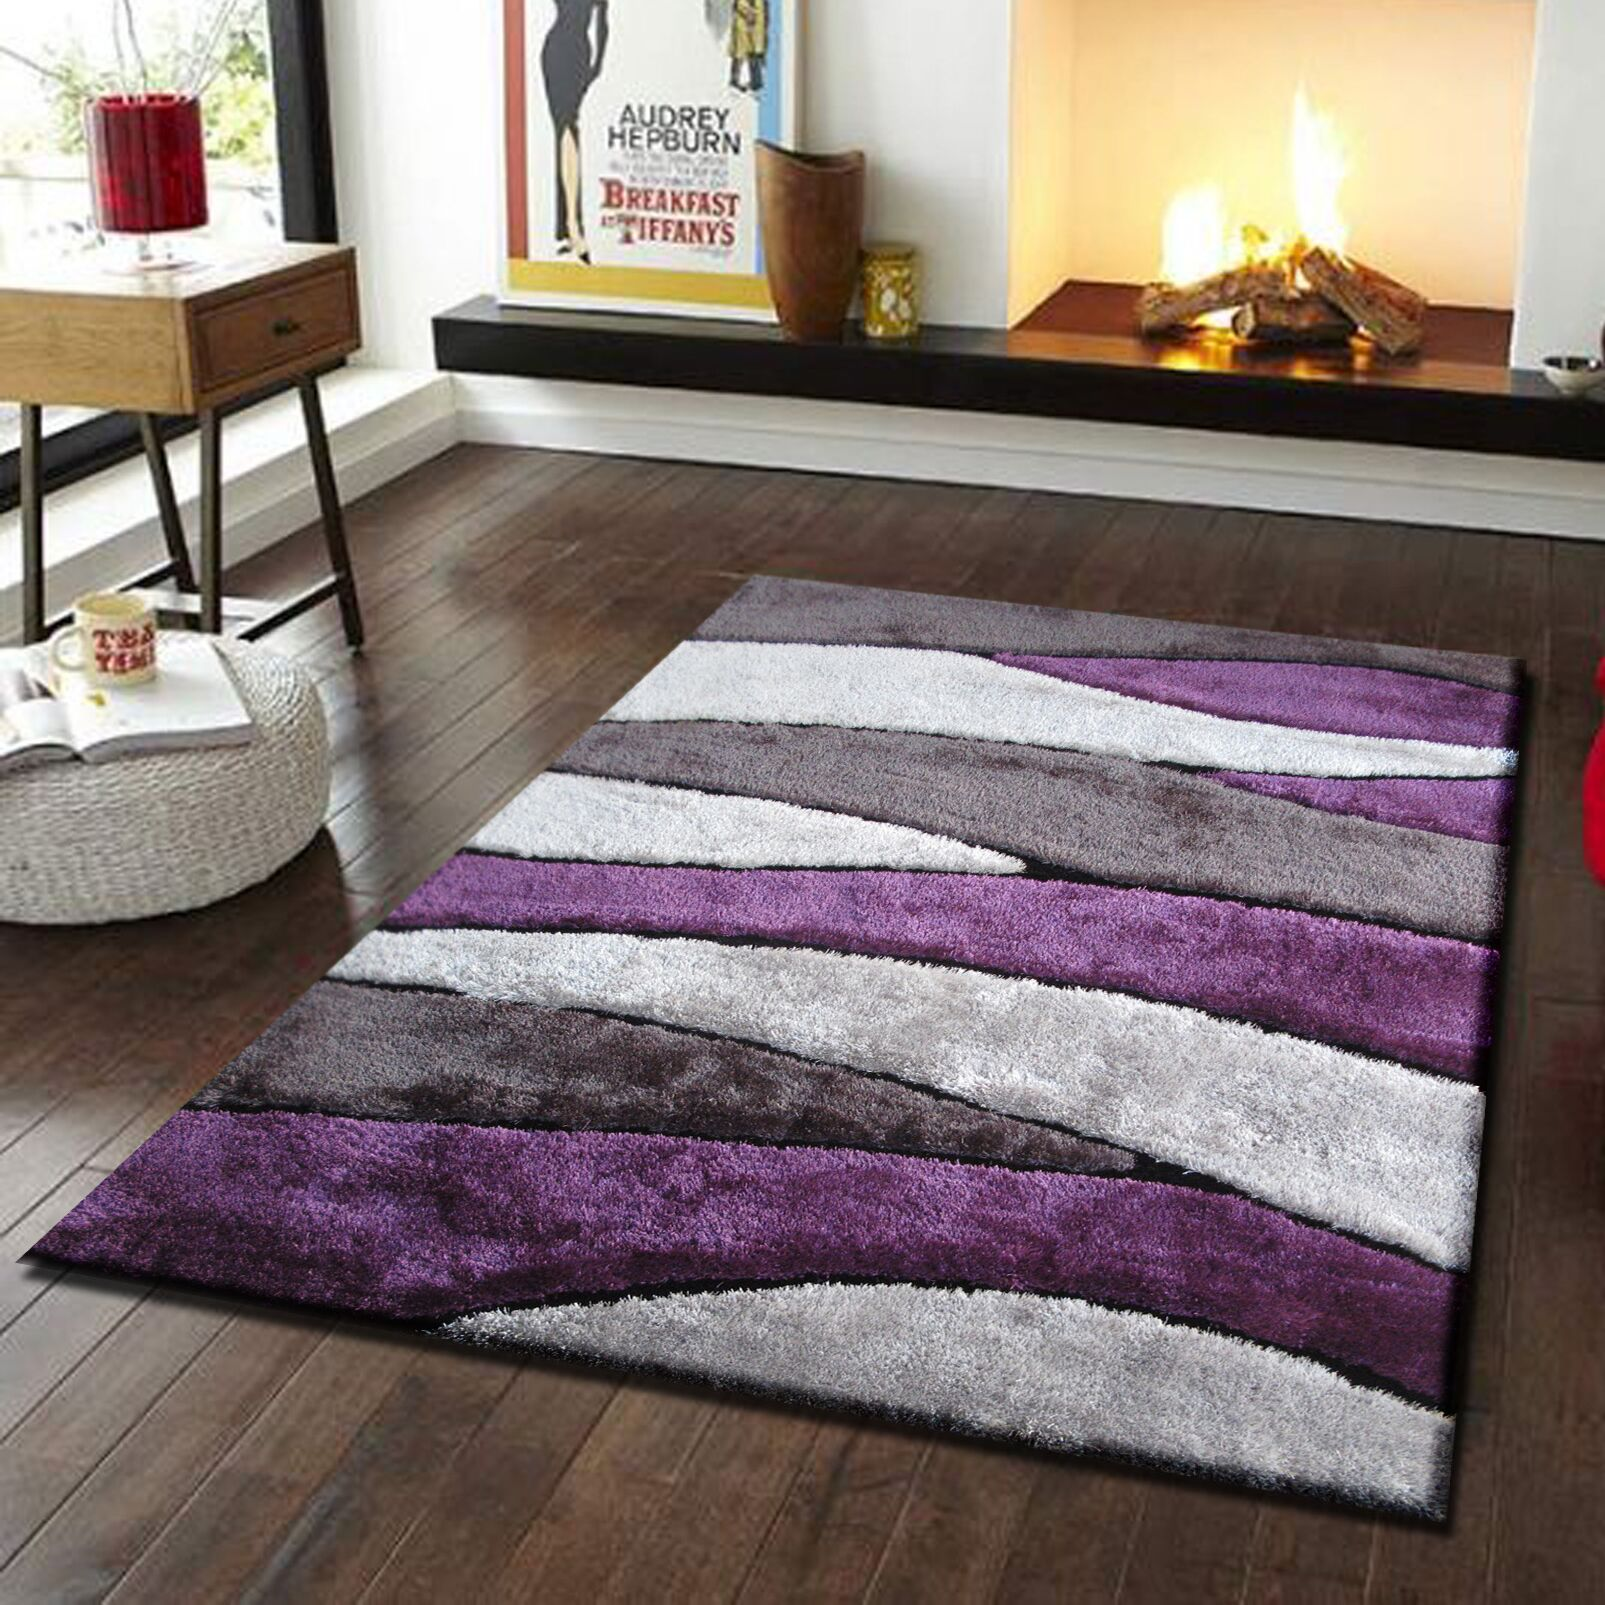 Living Shag Purple/Gray Rug Rug Size: 5' x 7'